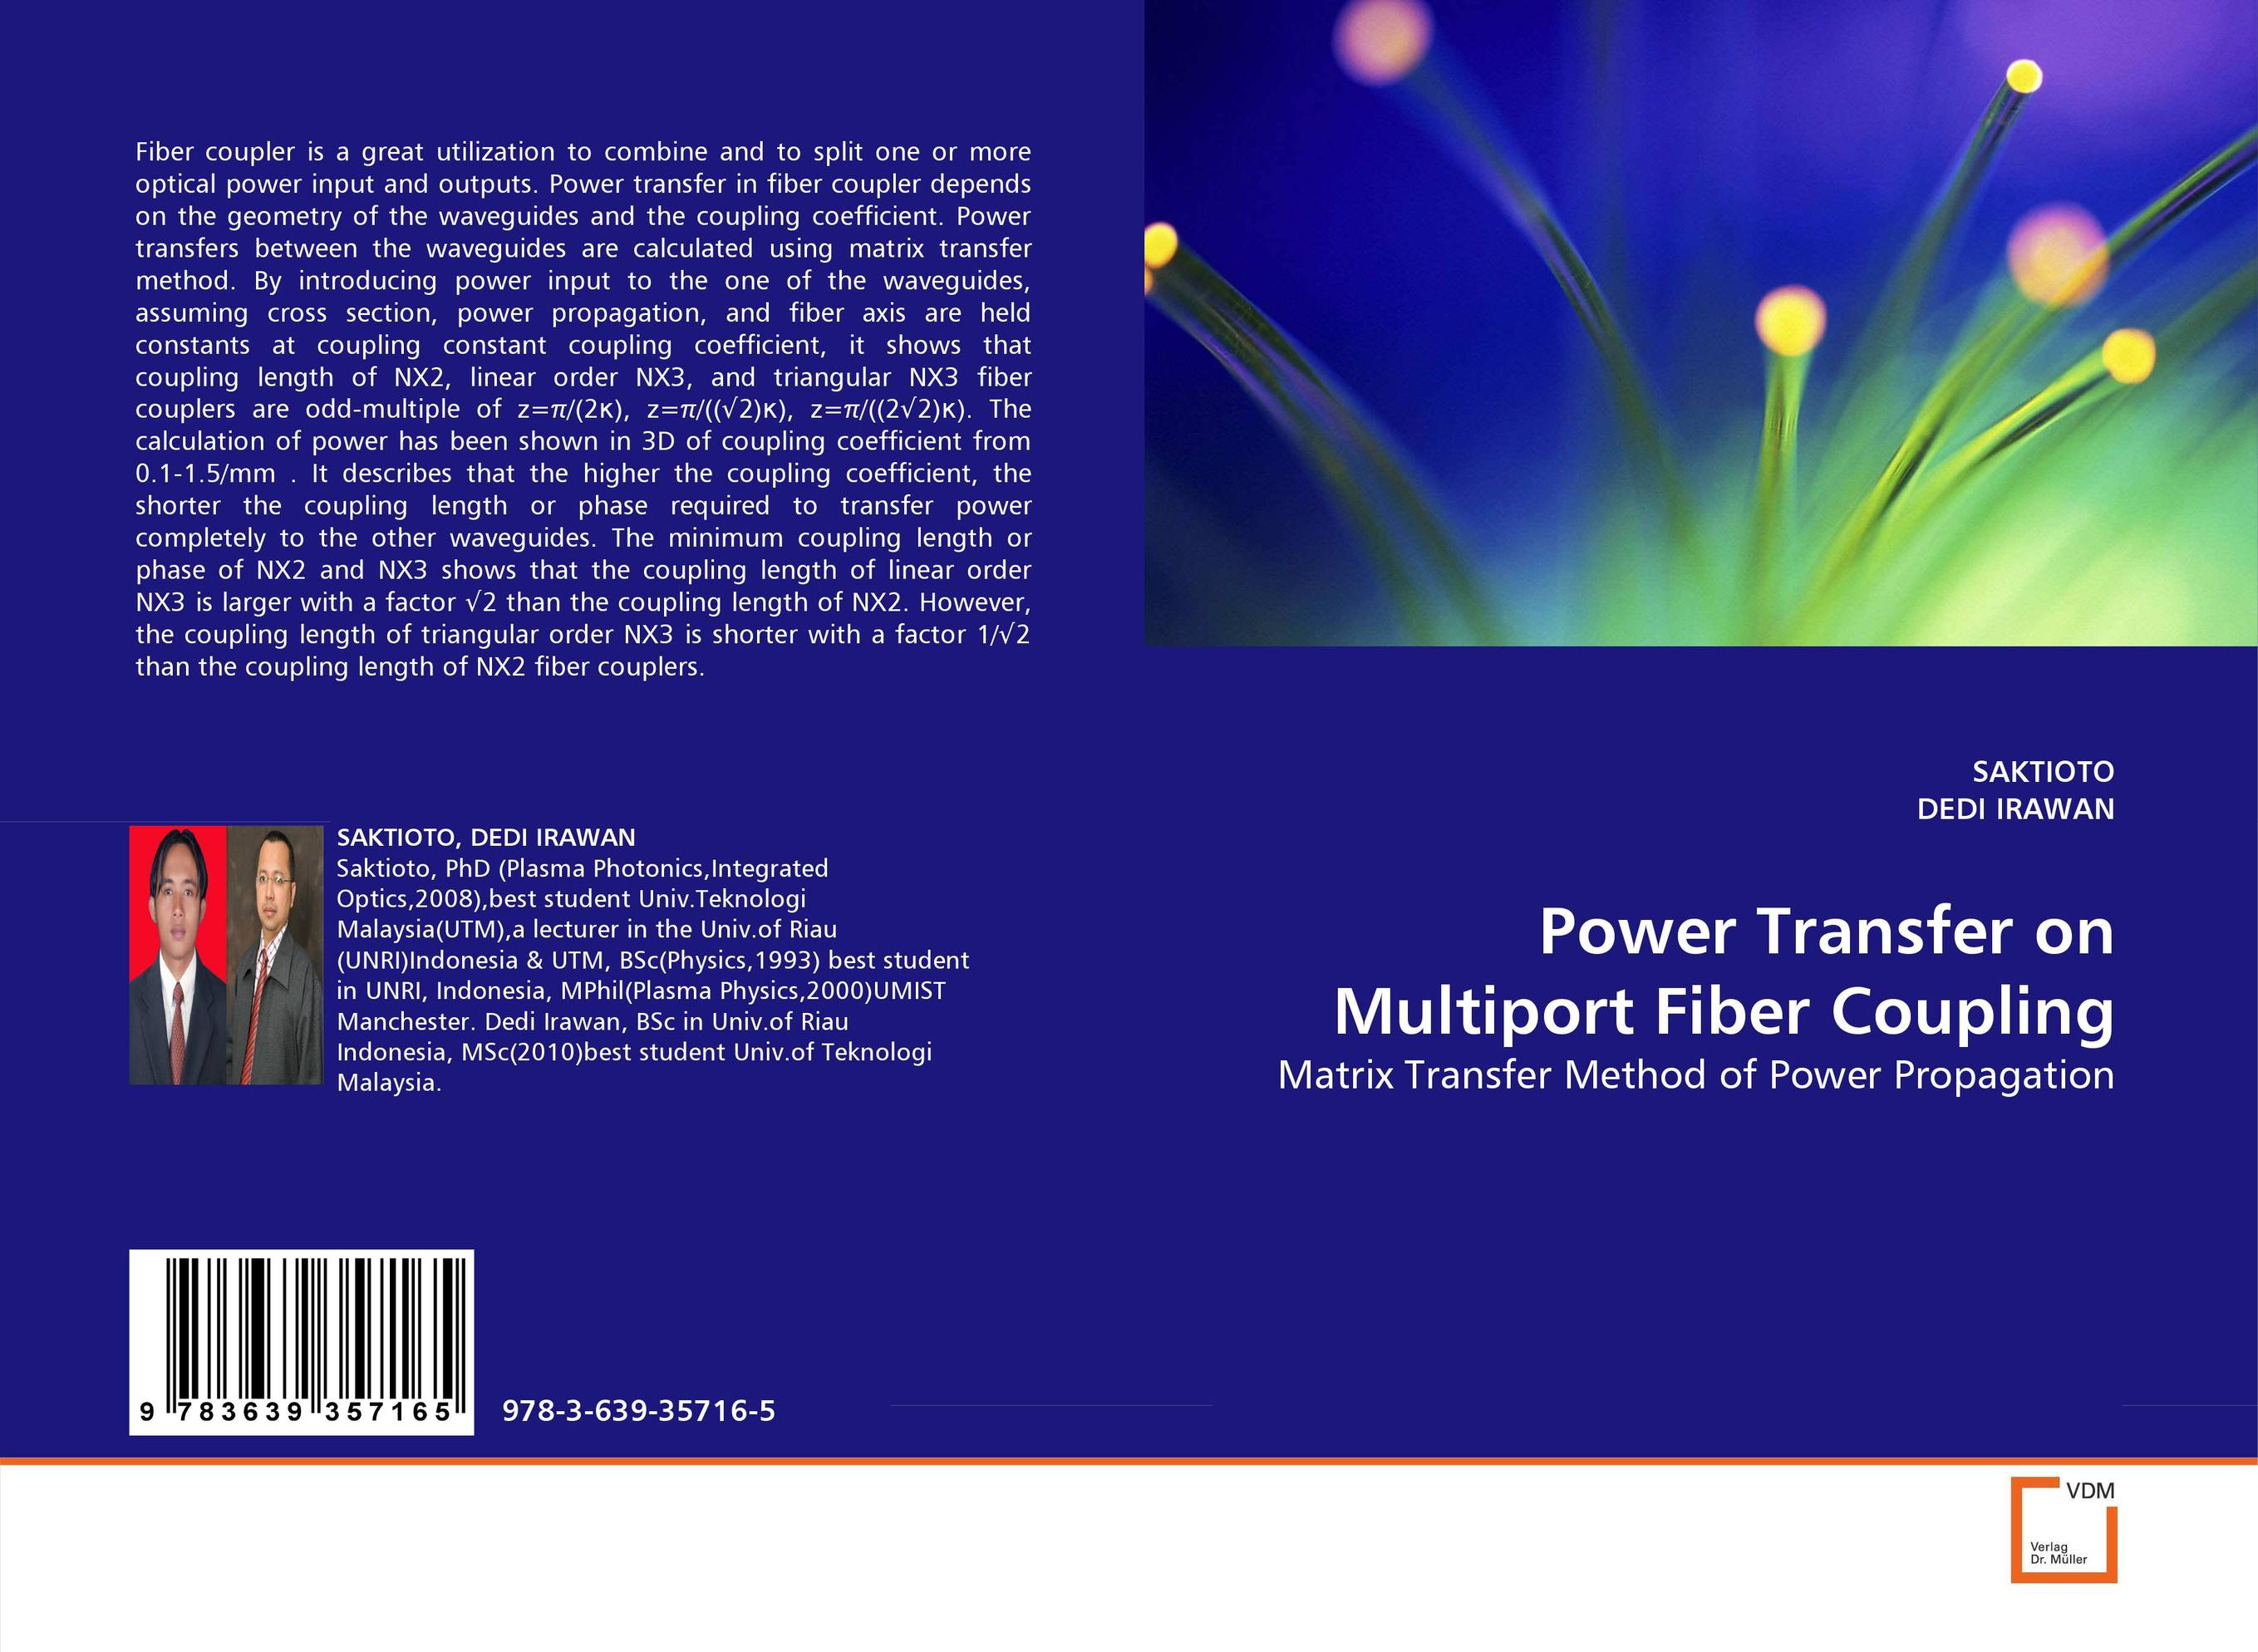 Power Transfer on Multiport Fiber Coupling original capacitive coupling capacitor of